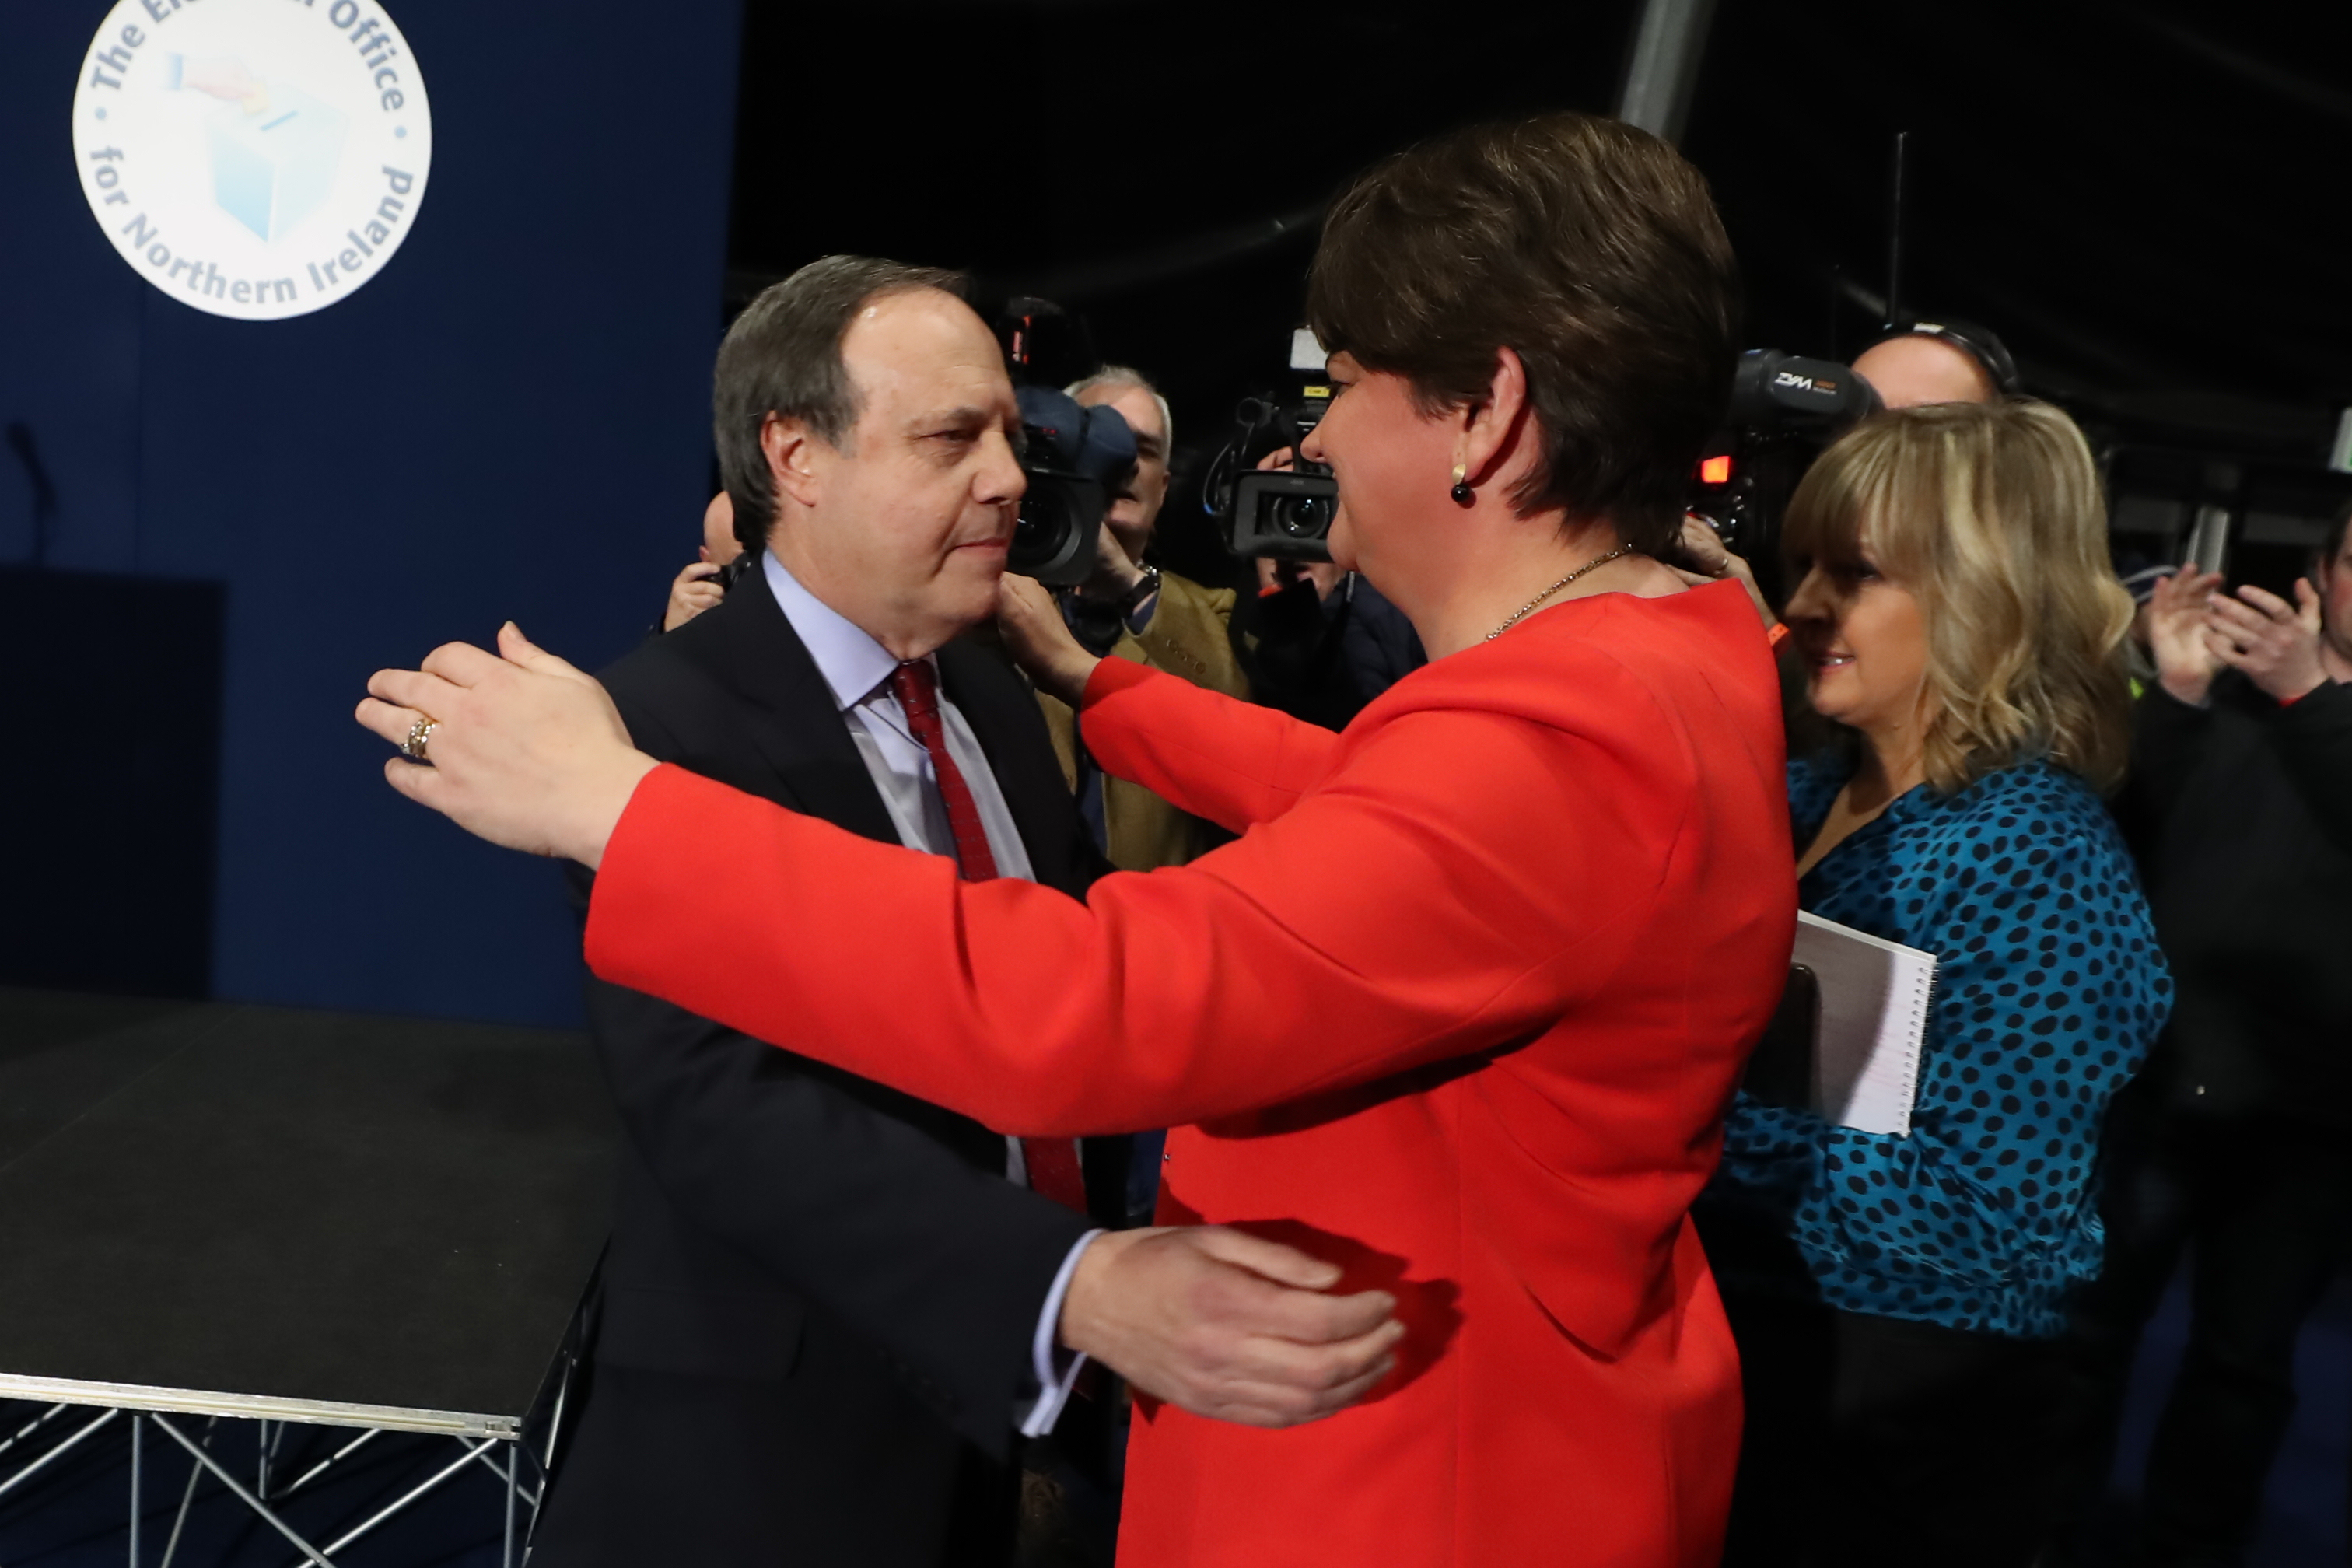 The DUP's Nigel Dodds is embraced by leader Arlene Foster after losing the Belfast North seat at the Titanic exhibition centre, Belfast, for the 2019 General Election. (Photo by Liam McBurney/PA Images via Getty Images)